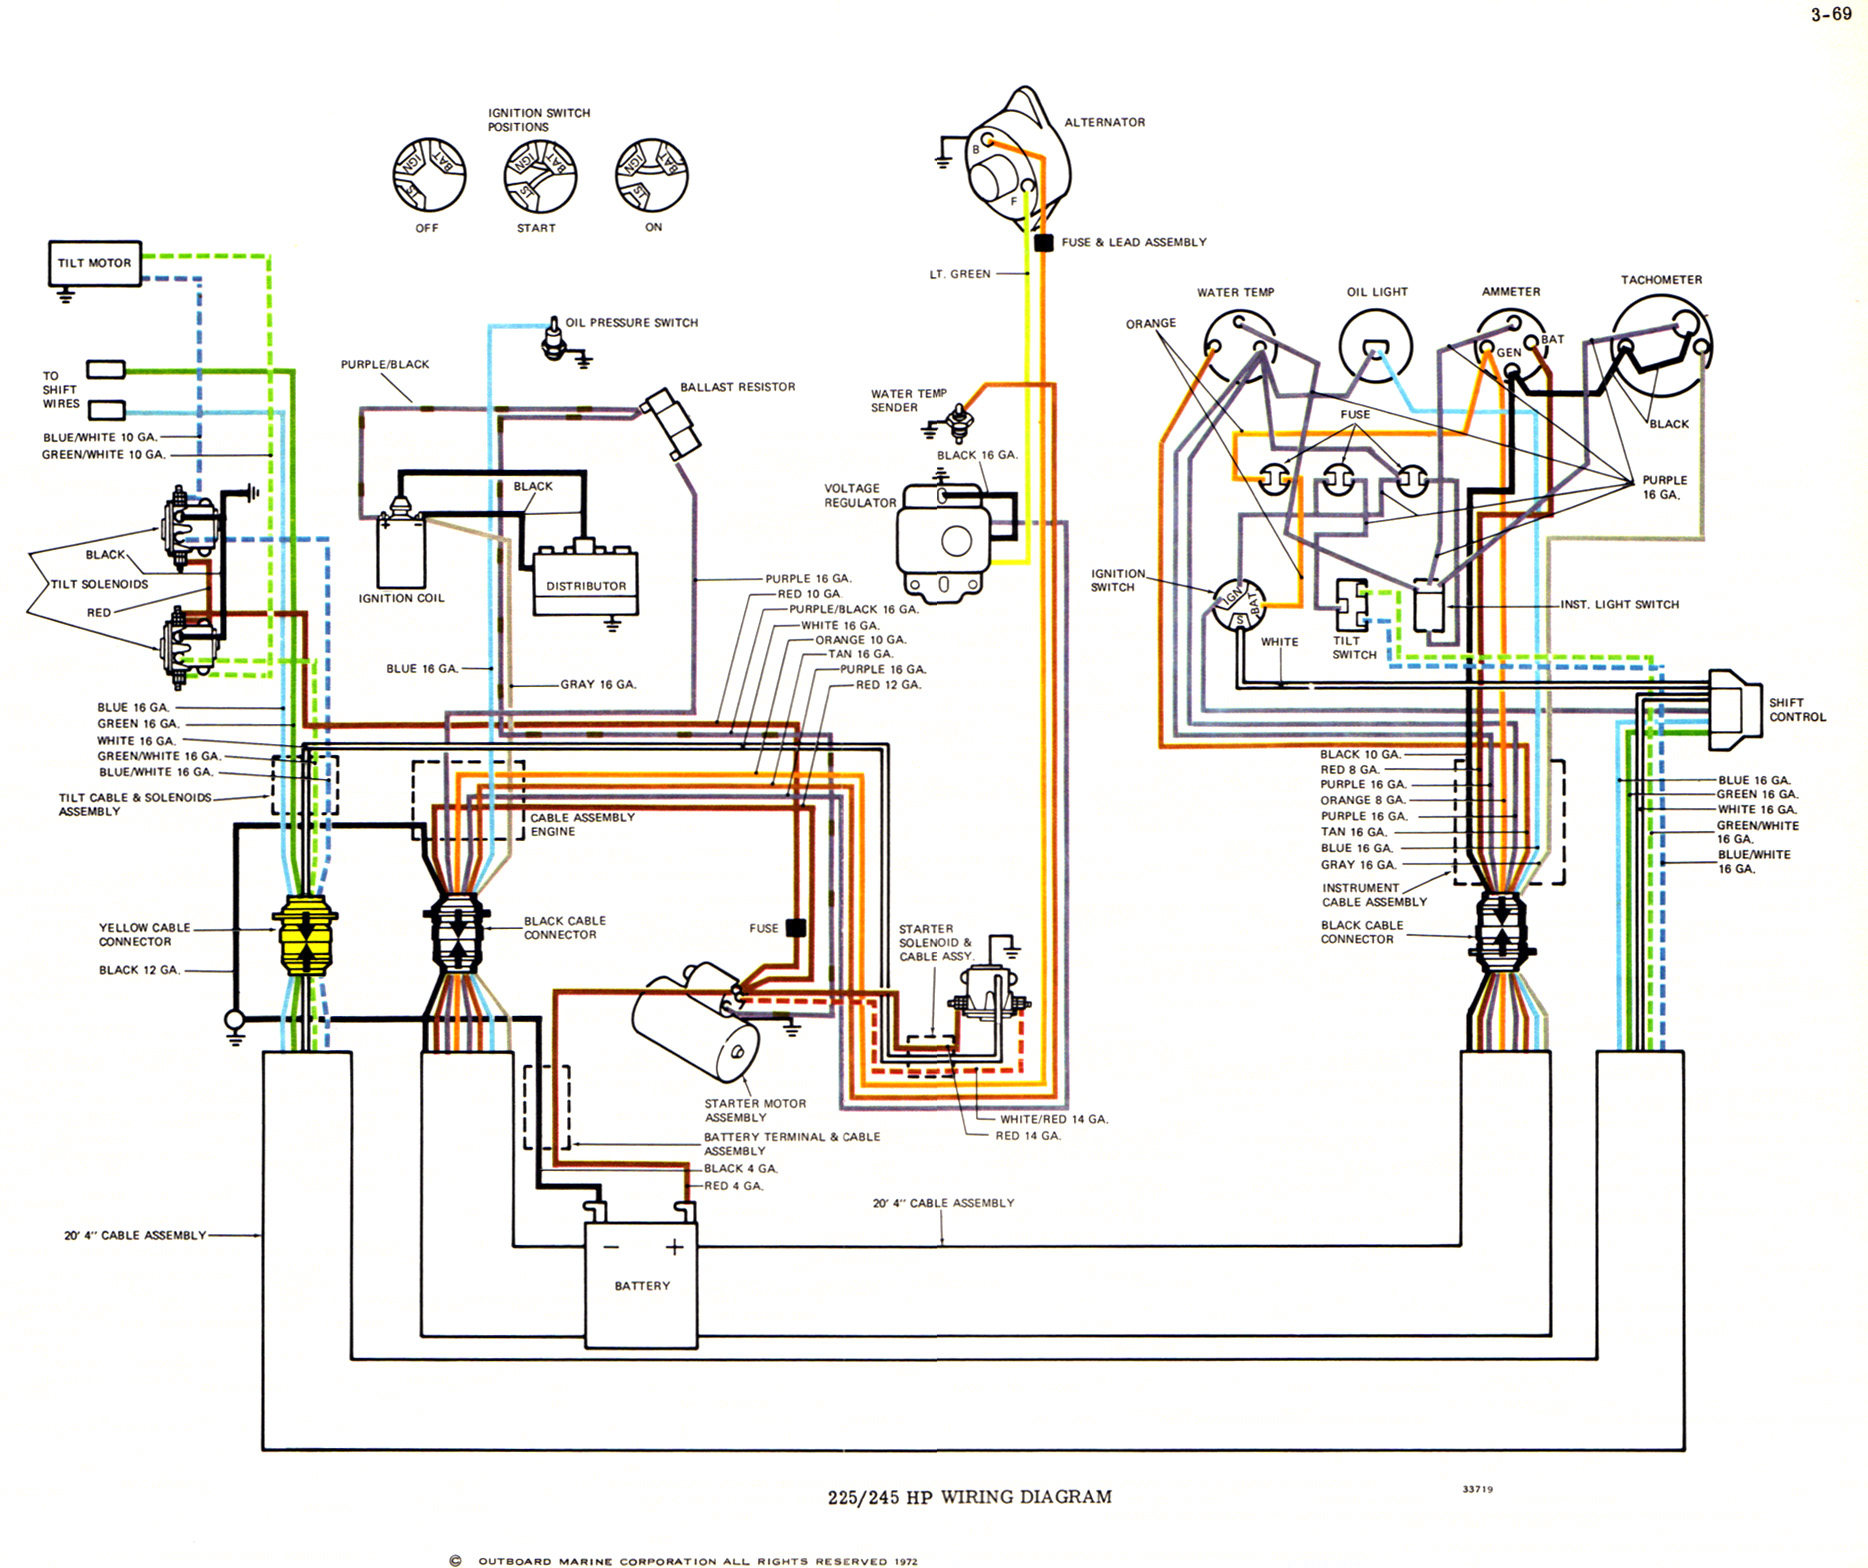 73_OMC_V8_all_big omc wiring diagram basic boat wiring schematic \u2022 wiring diagrams  at reclaimingppi.co